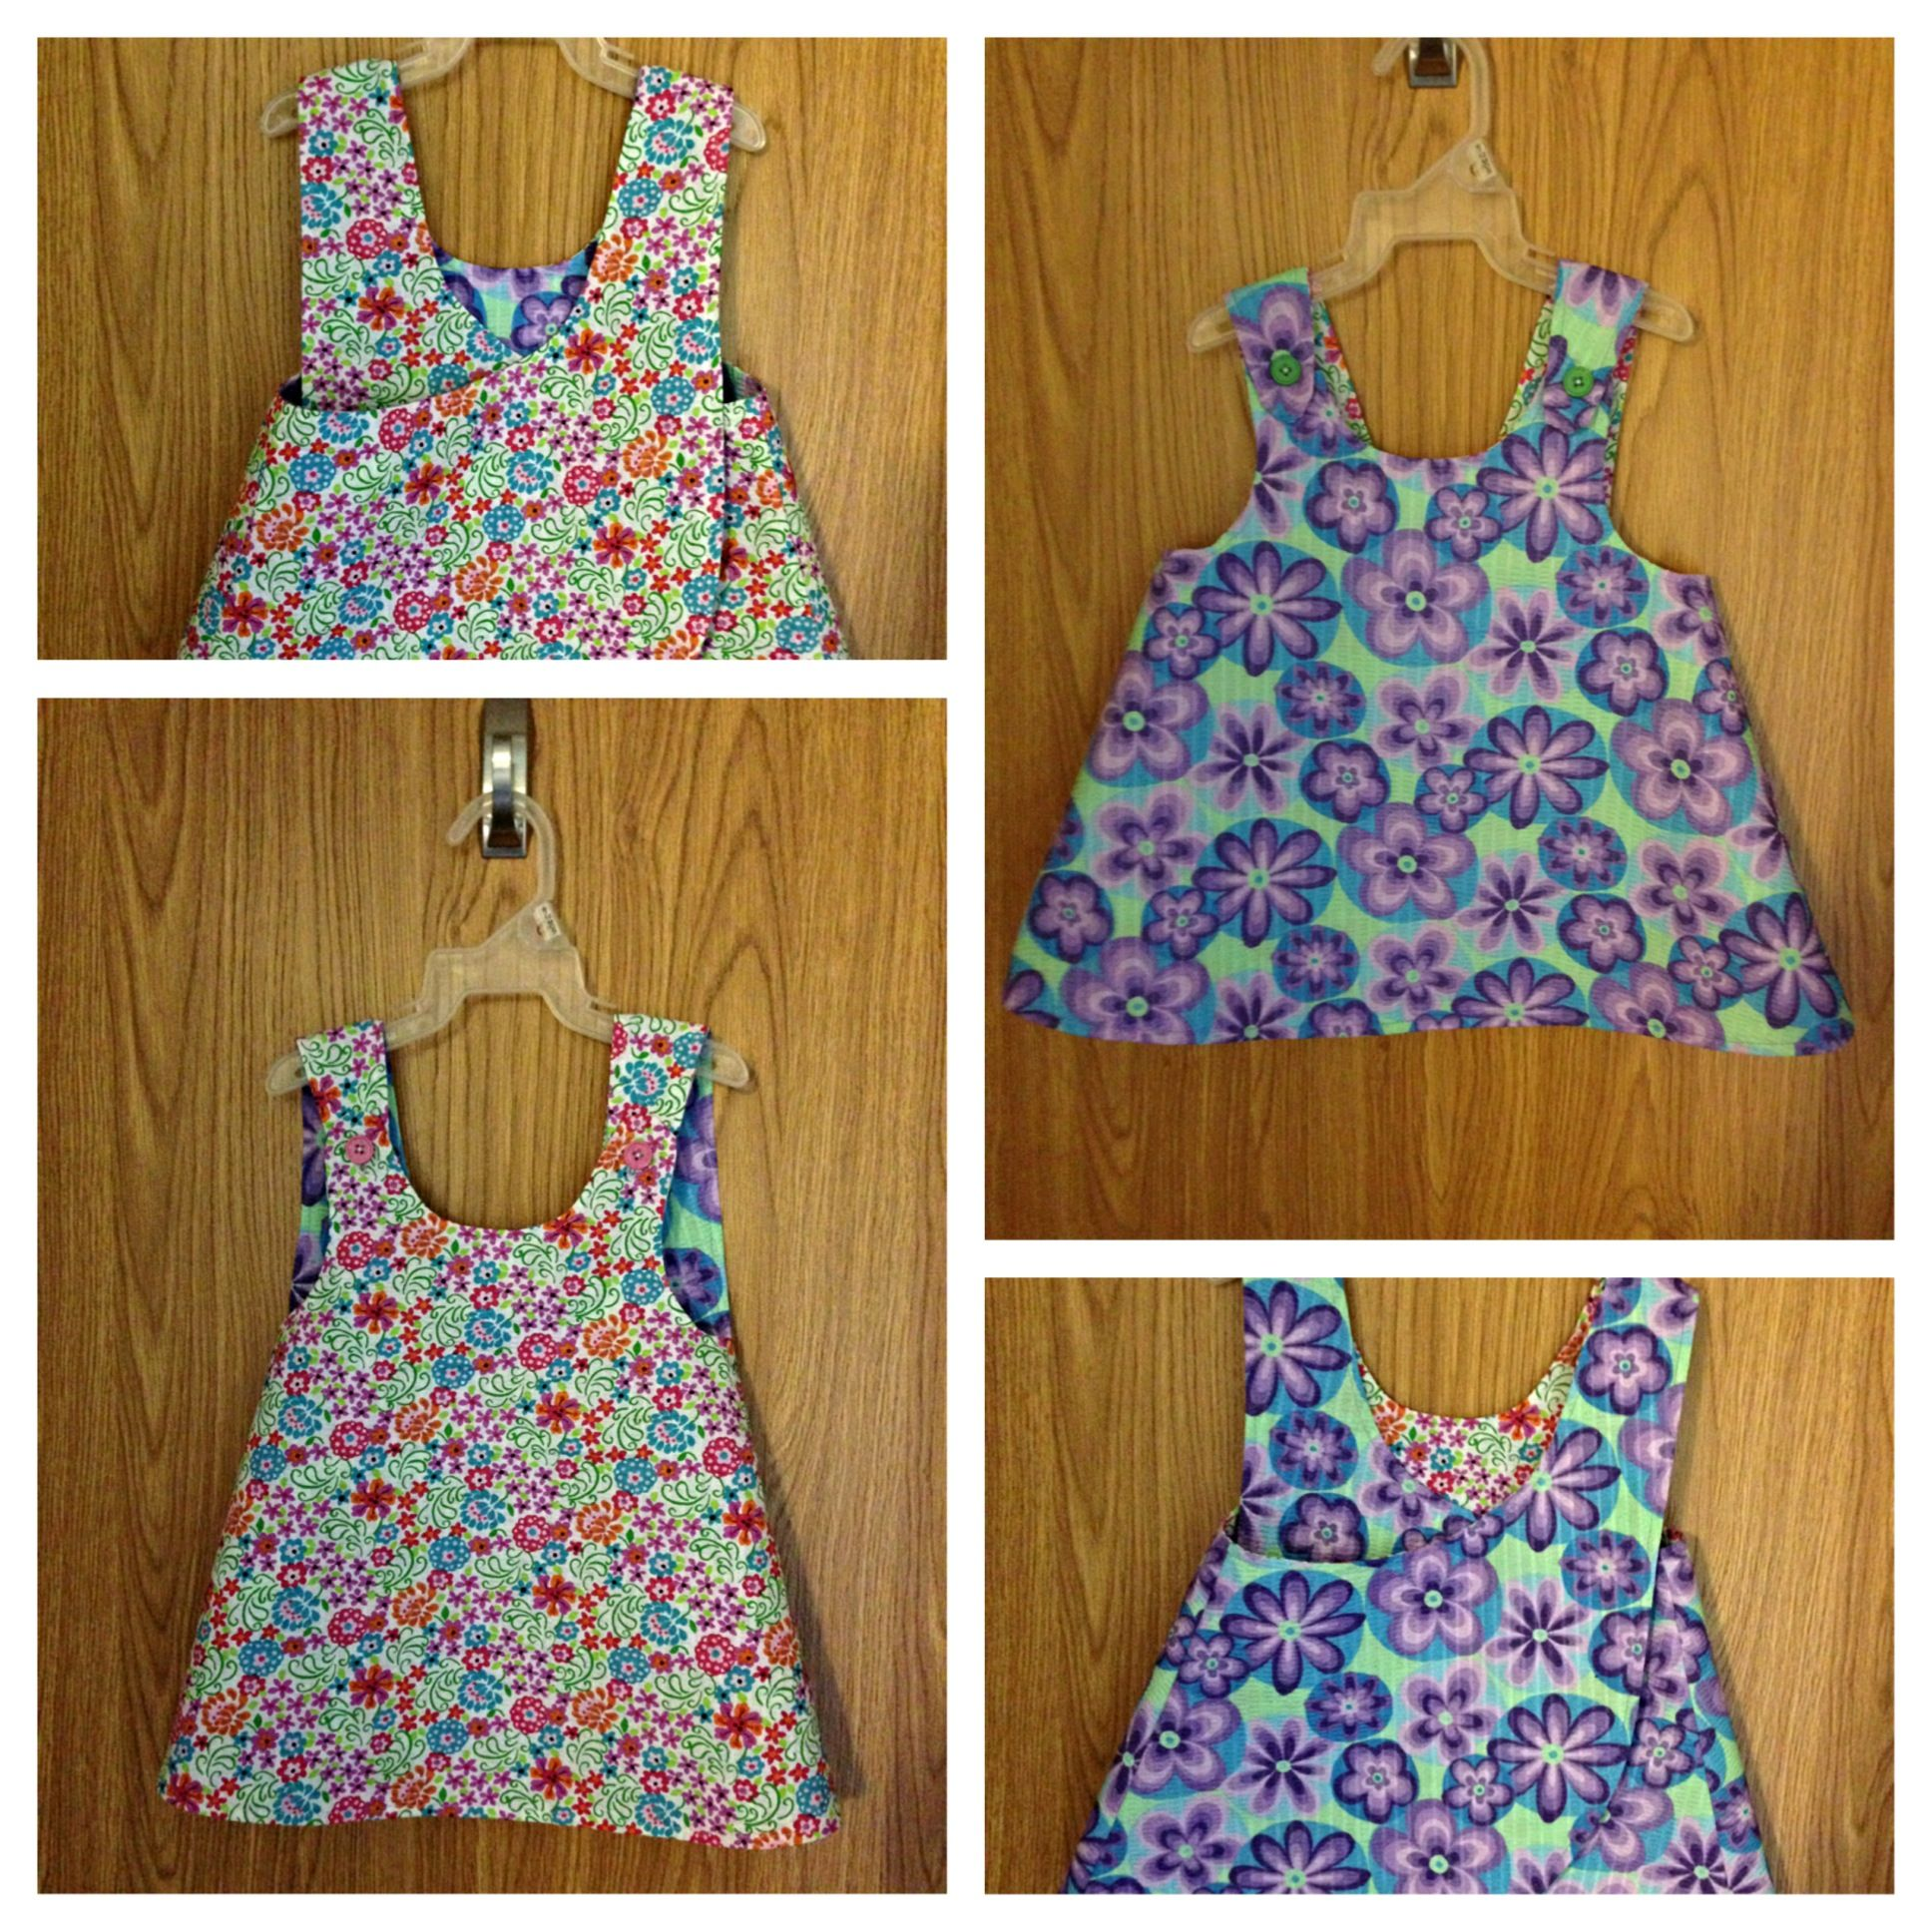 Used a vintage Butterick pattern and Tutti Frutti fabric from JoAnn ...